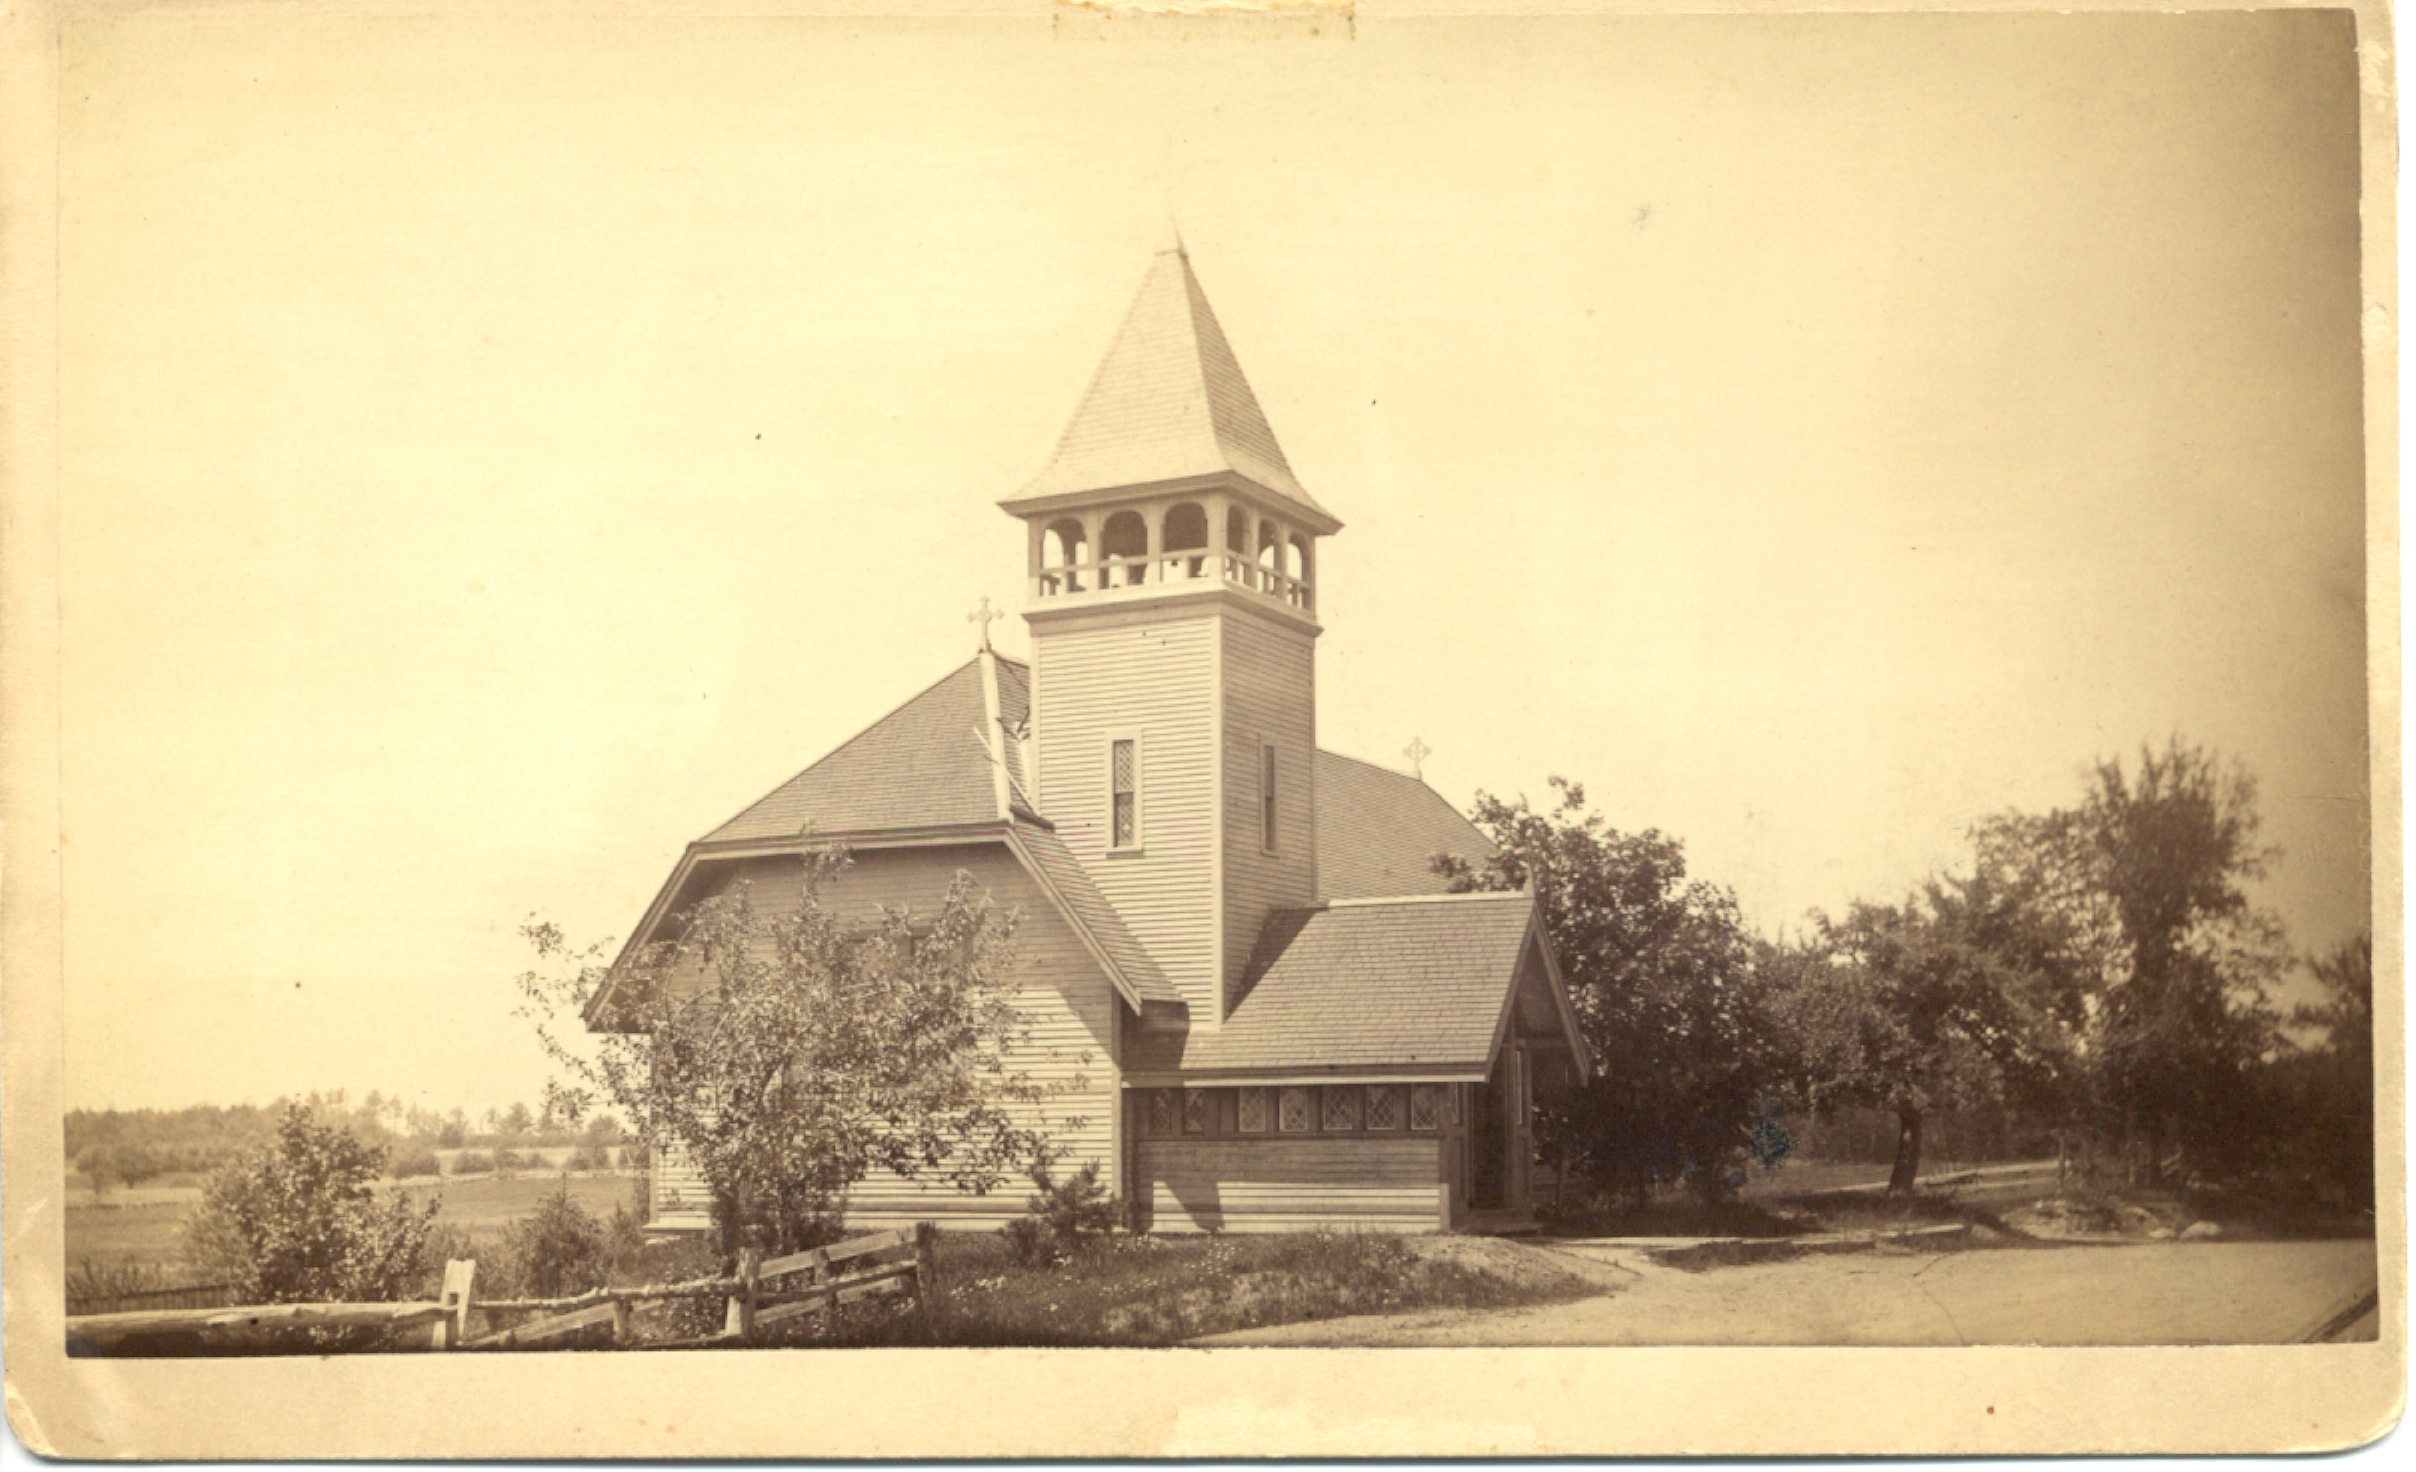 St. Anne's in 1889